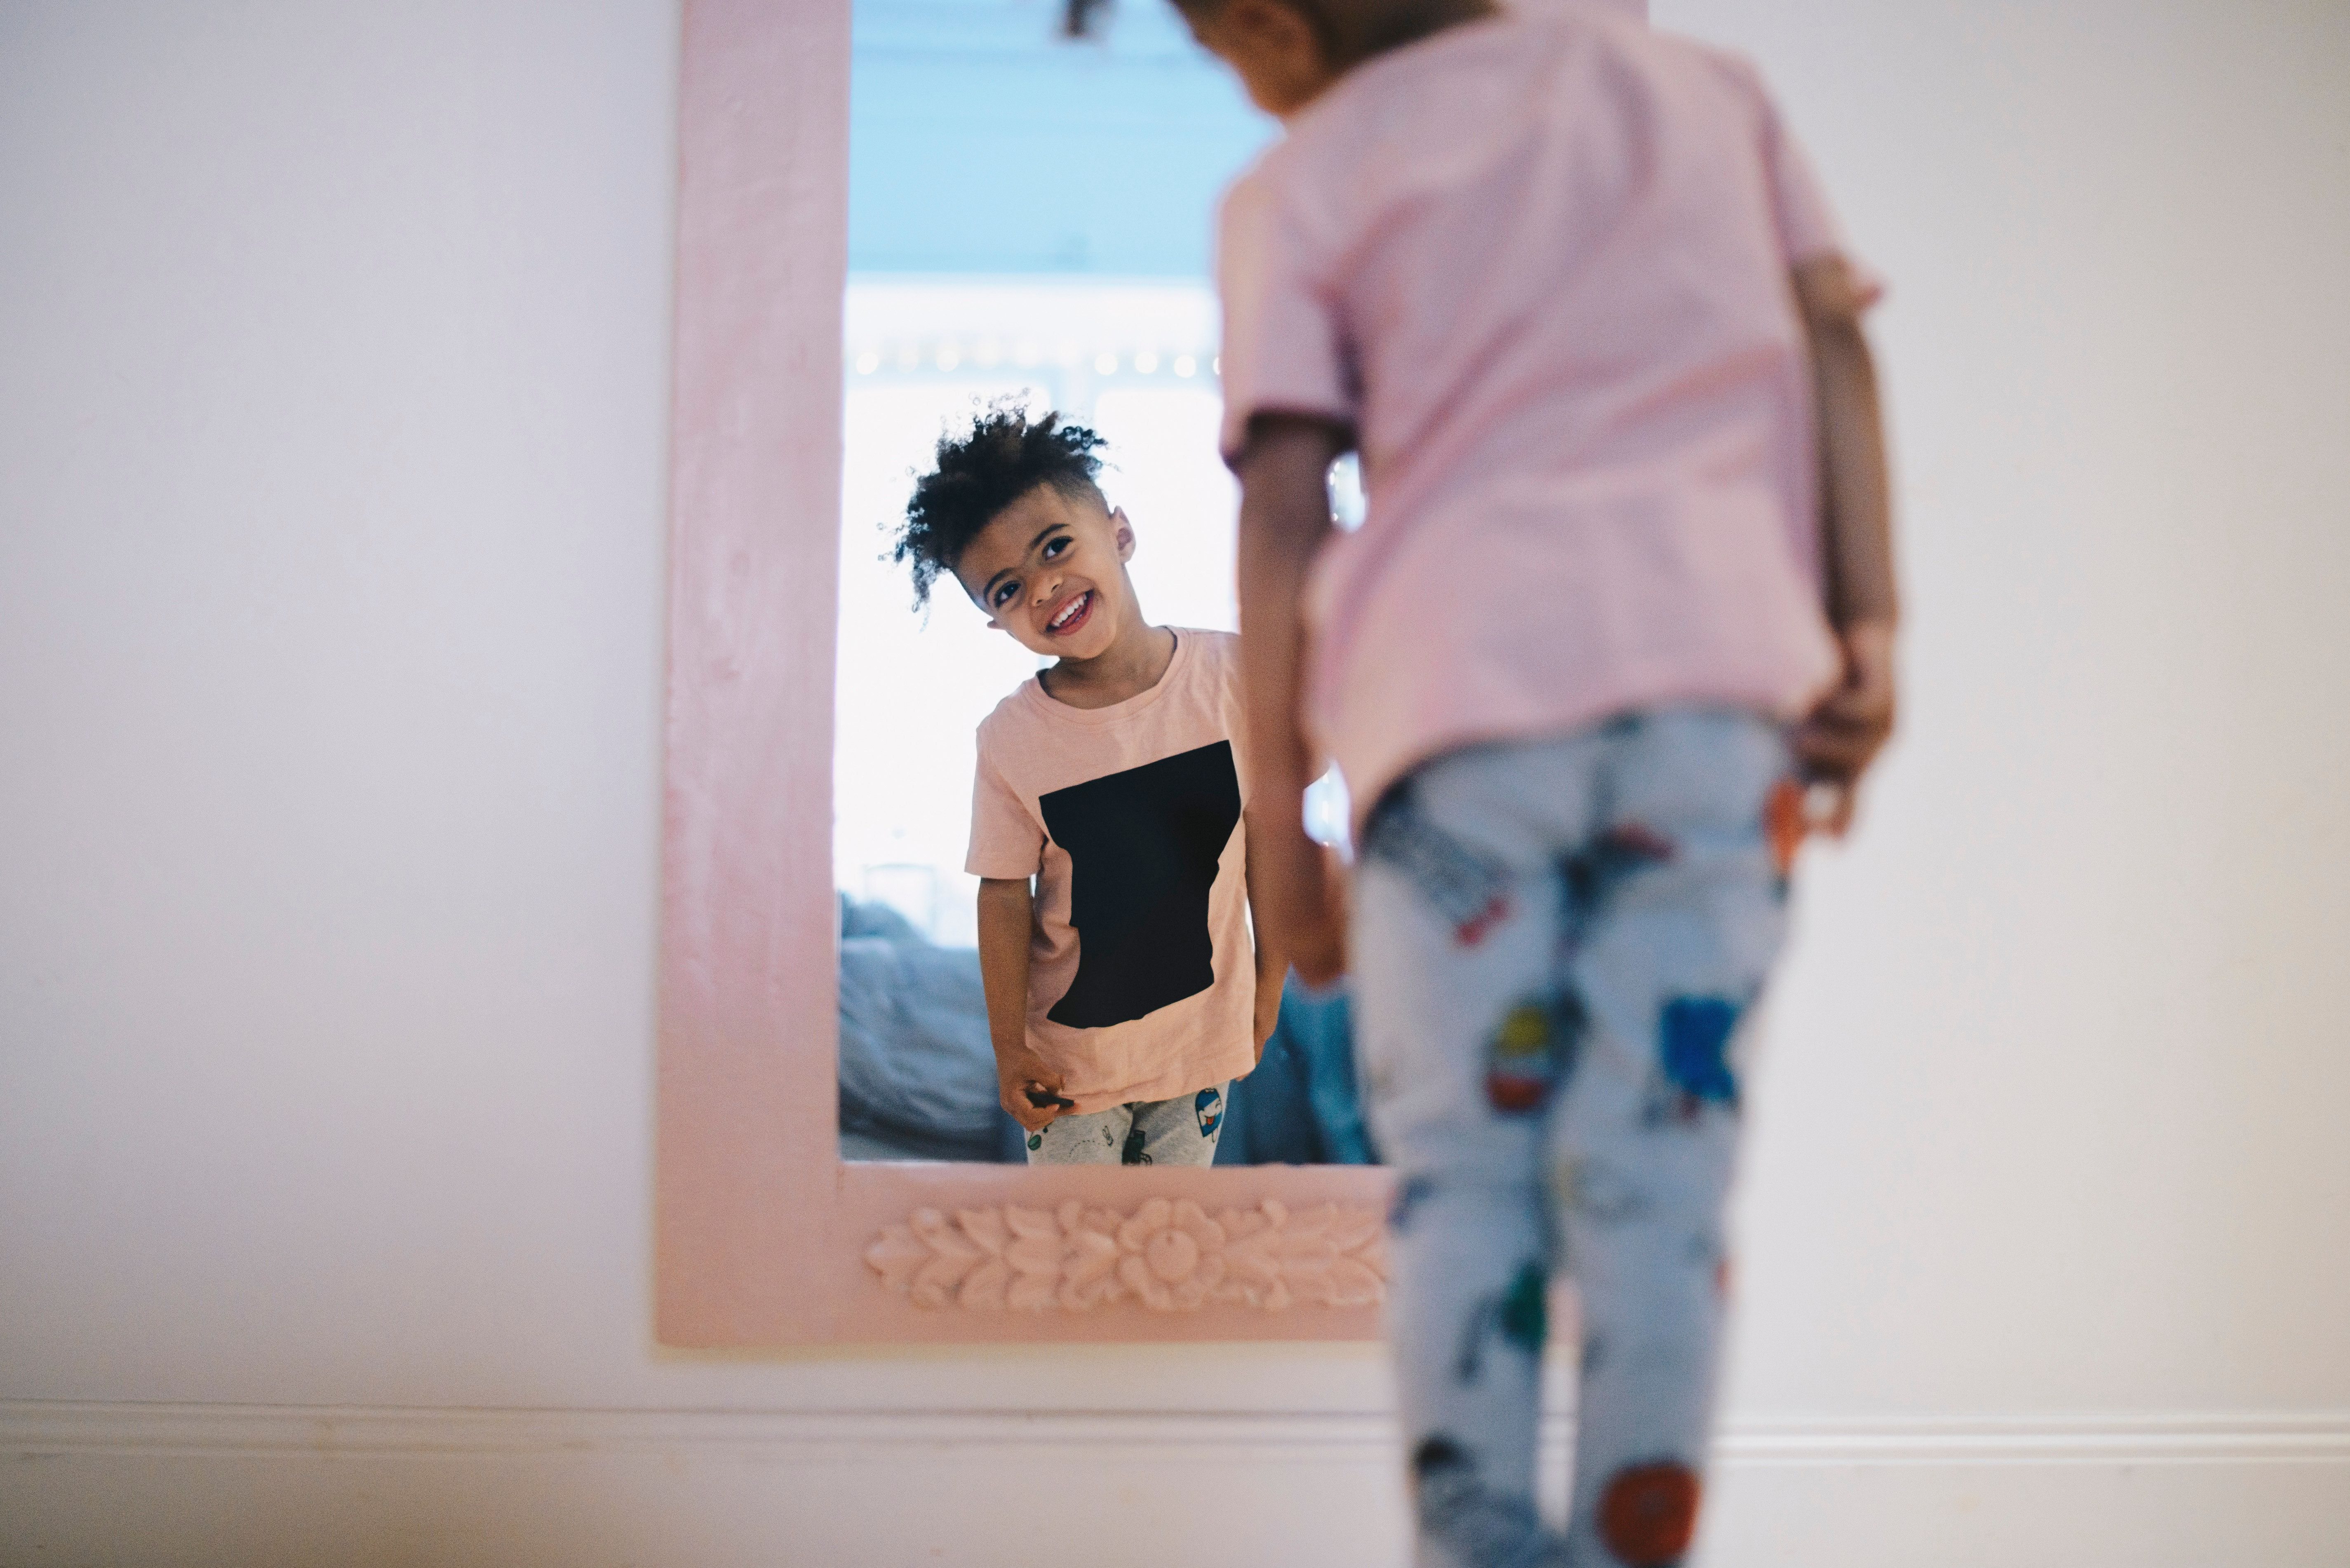 """Parents influence how their children come to think about their bodies in a number of ways,"" said Amy Slater, a professor at the University of the West of England, Bristol, who focuses on body image issues."